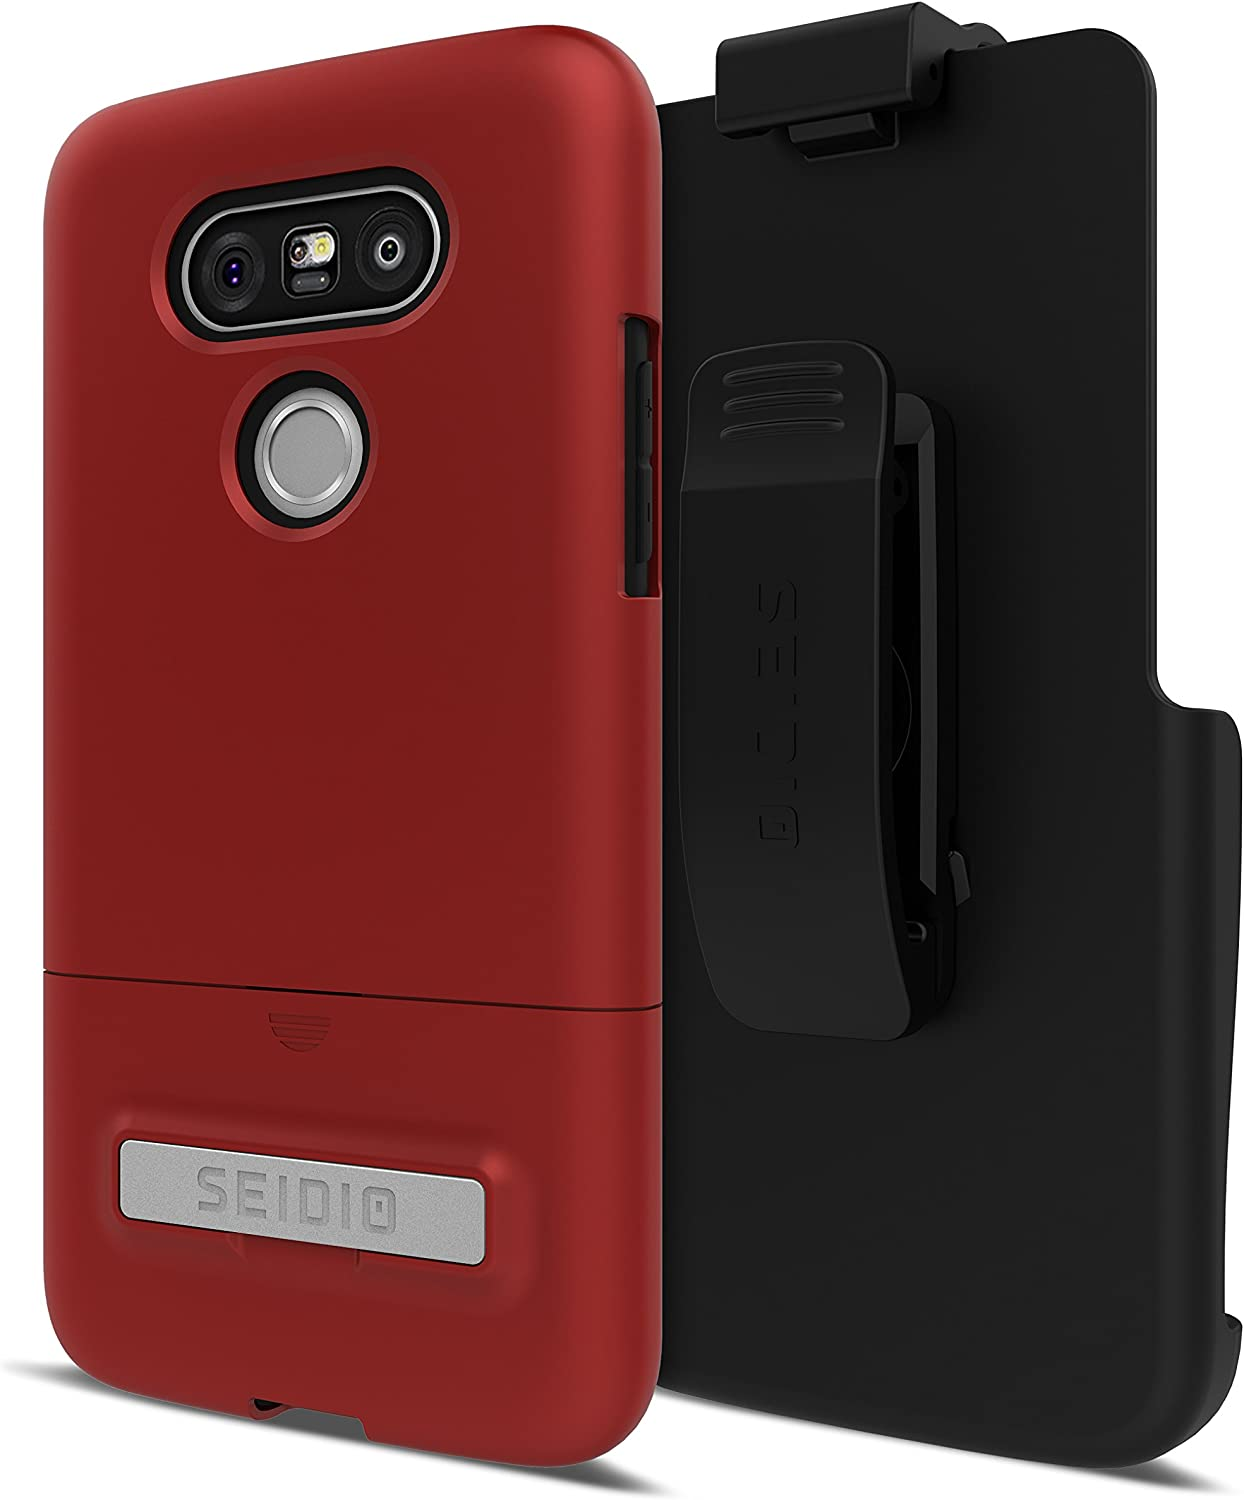 Seidio Surface Cell Phone Case with Kickstand and Holster for LG G5 - Retail Packaging - Dark Red/Black